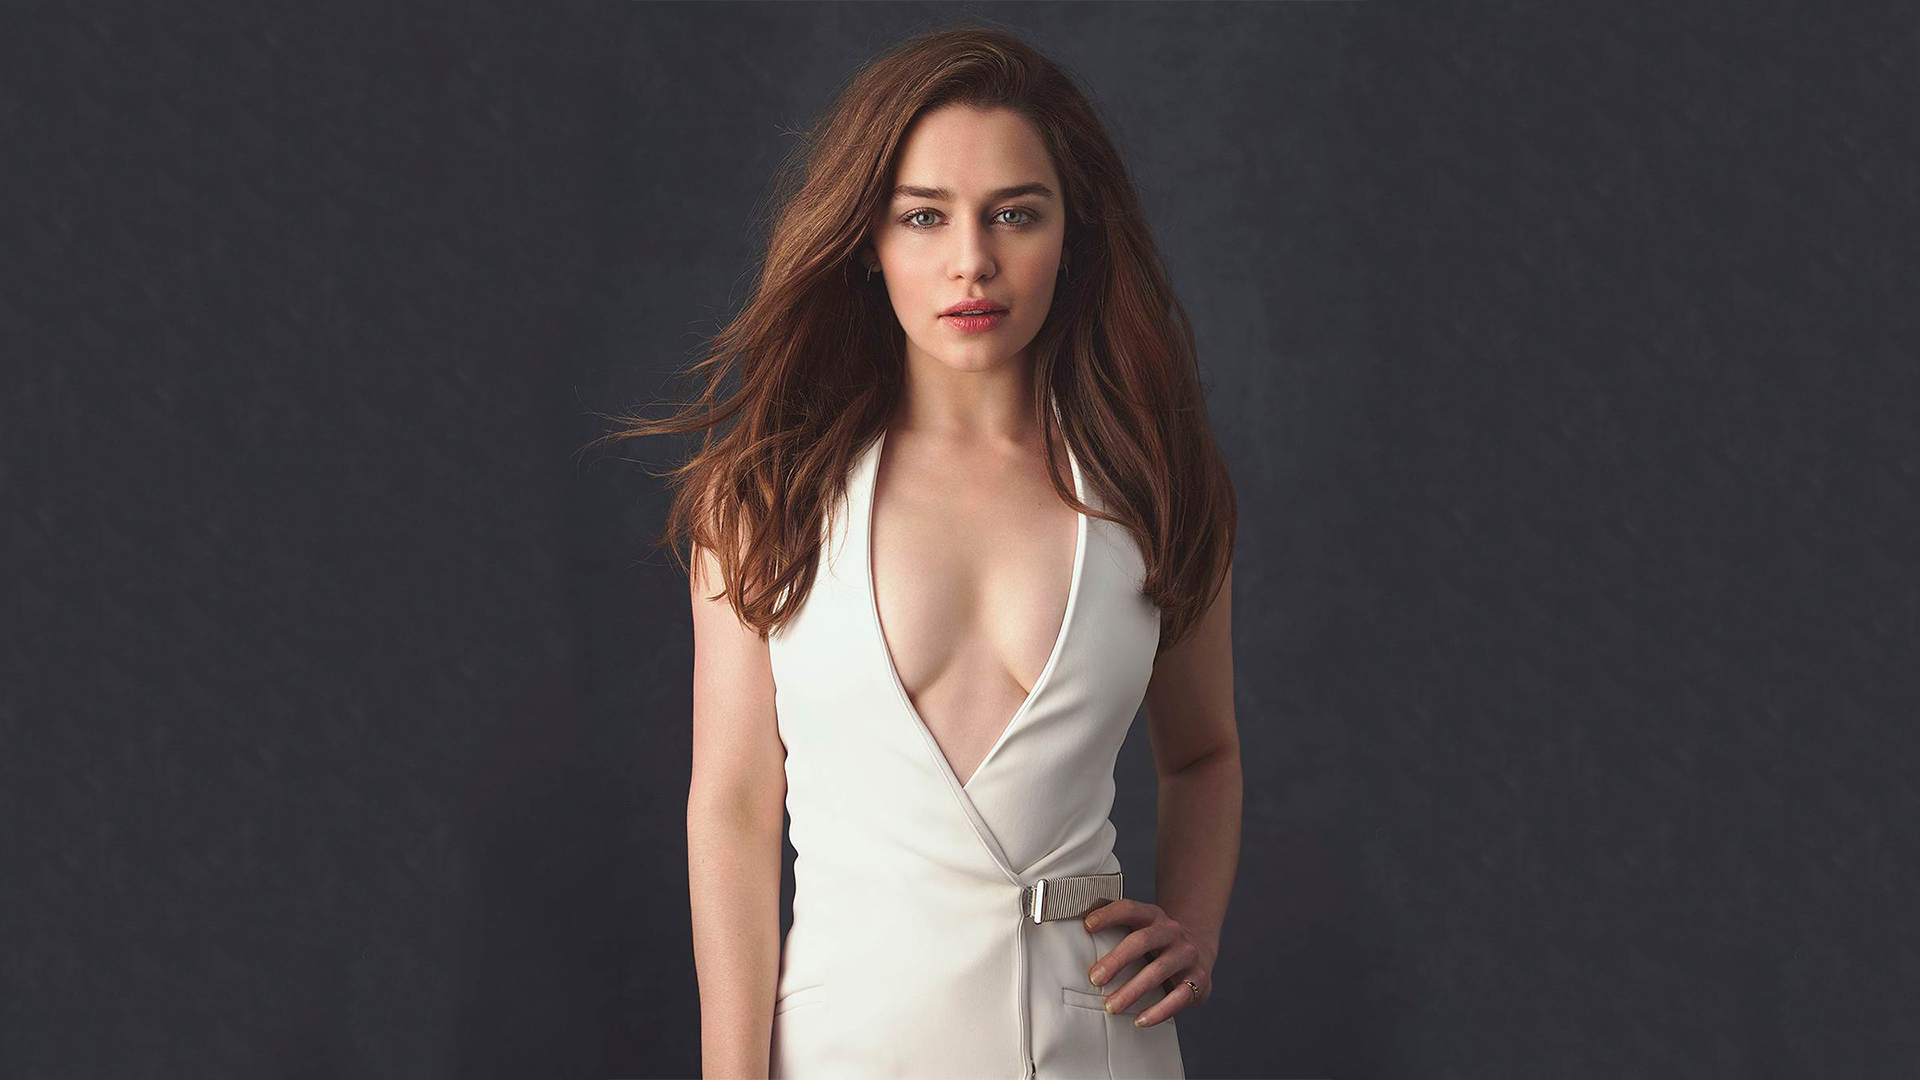 emilia clarke 2018 hd, hd celebrities, 4k wallpapers, images